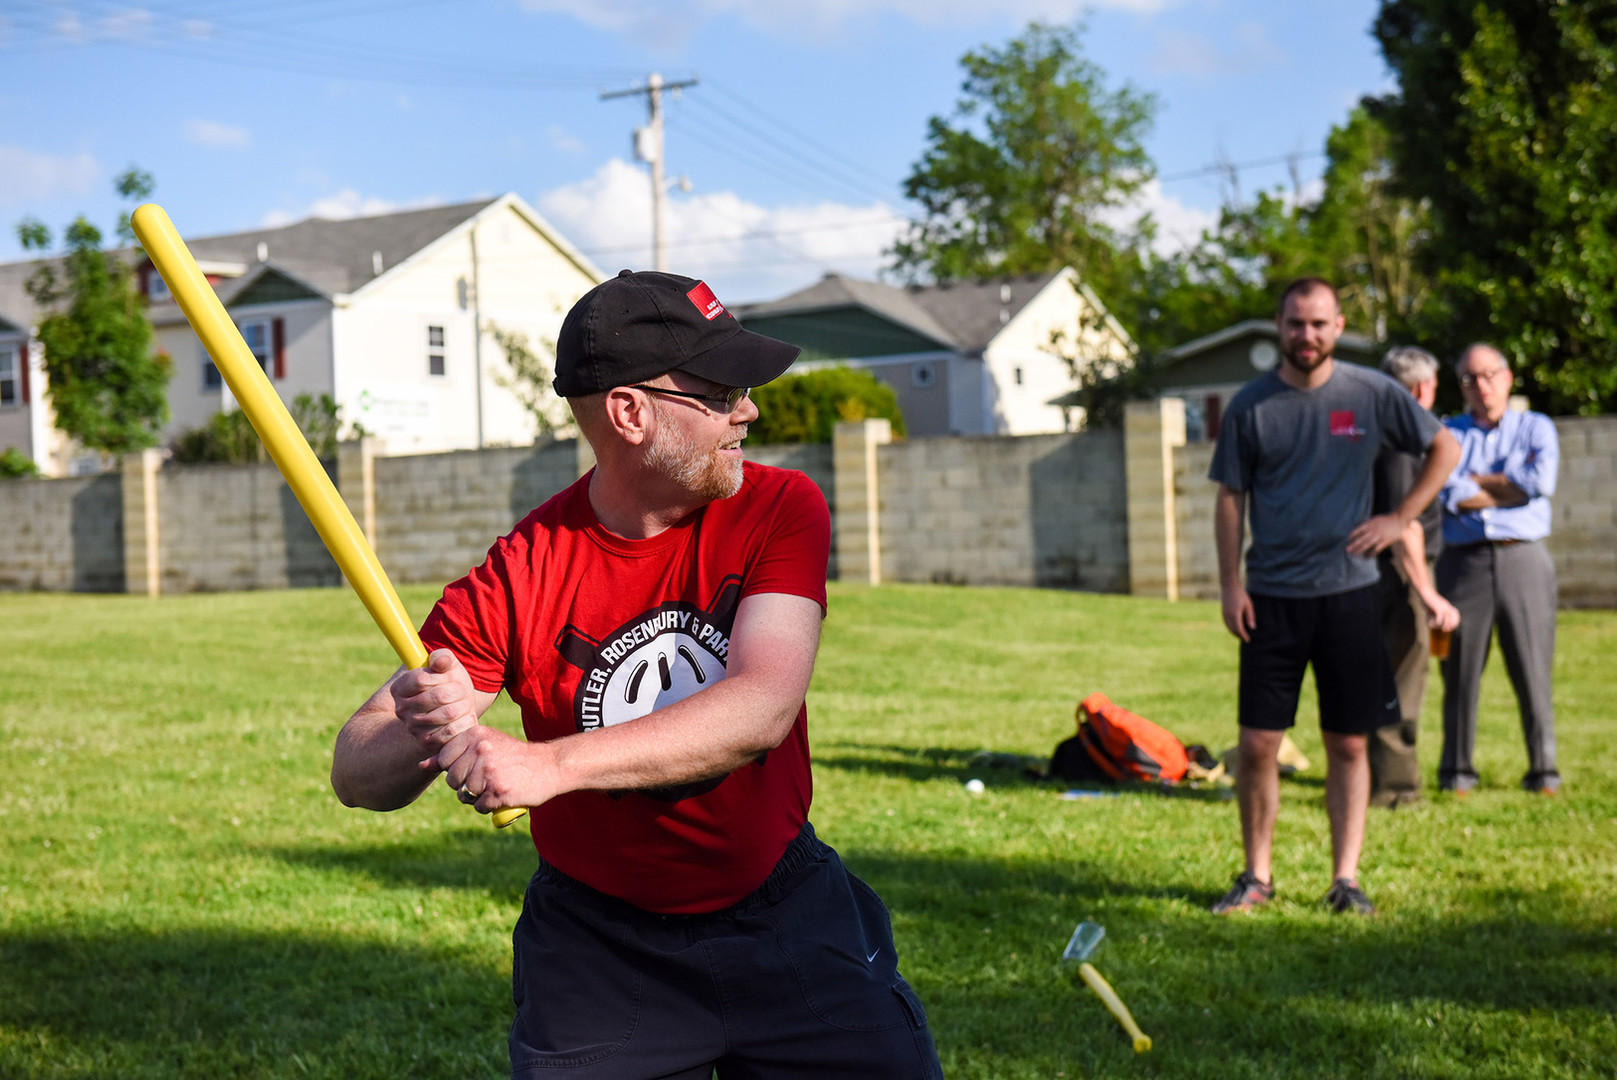 Glenn playing in our annual wiffle ball league